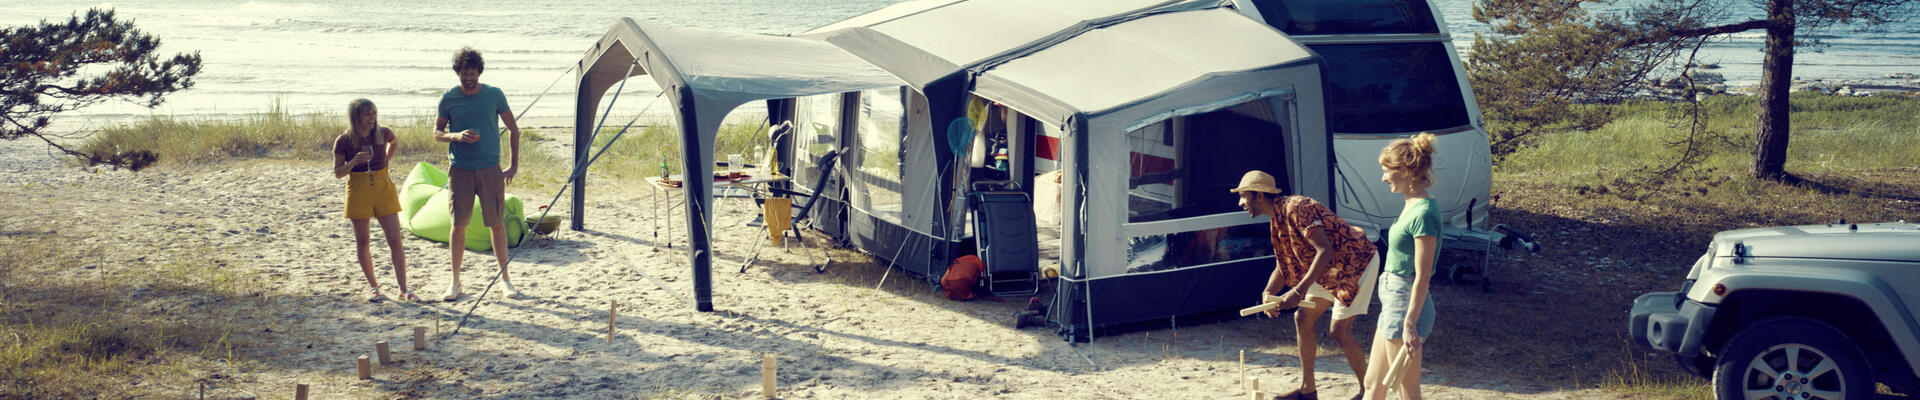 Weather Protection for Awnings | Dometic